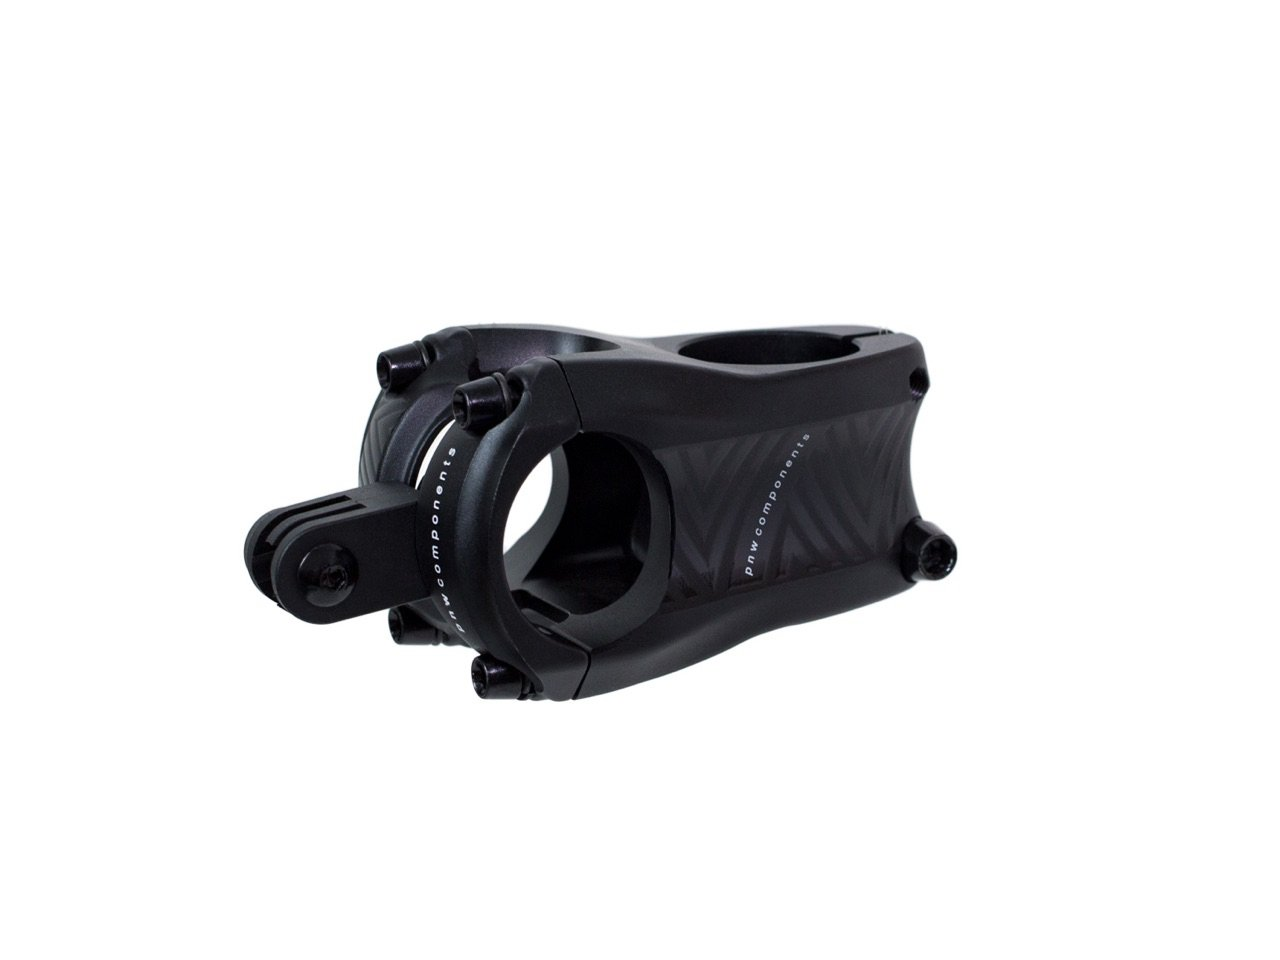 PNW Components The Range STEM with GOPRO OR Garmin Mount